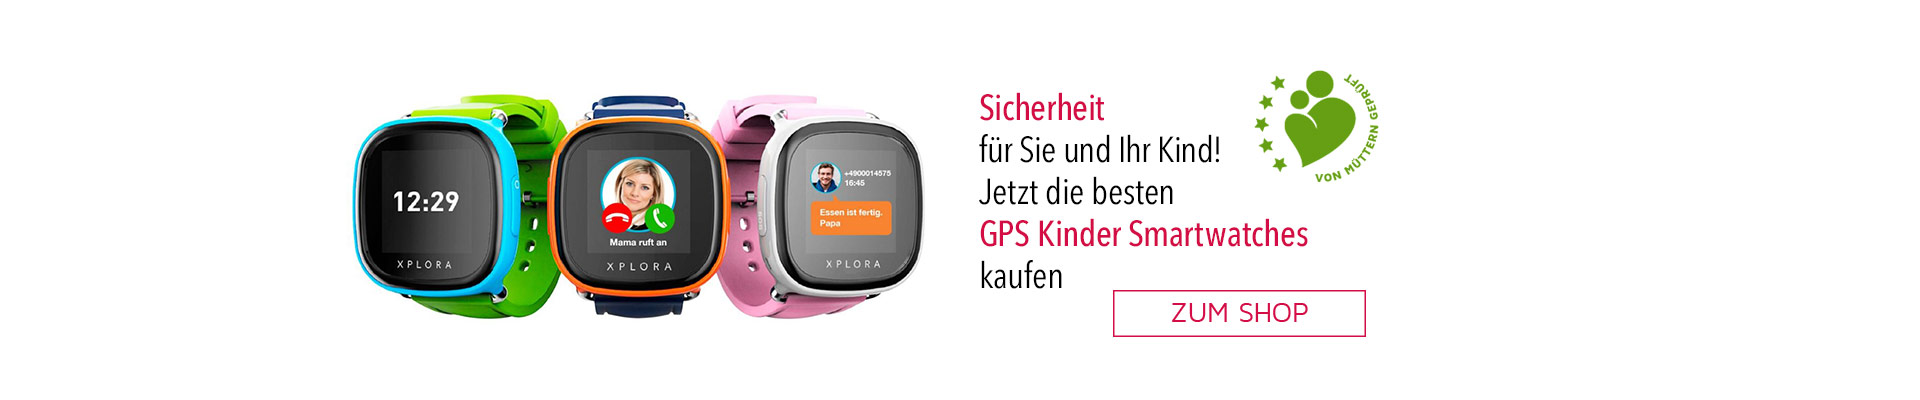 Kinder Smartwatch - Xplora